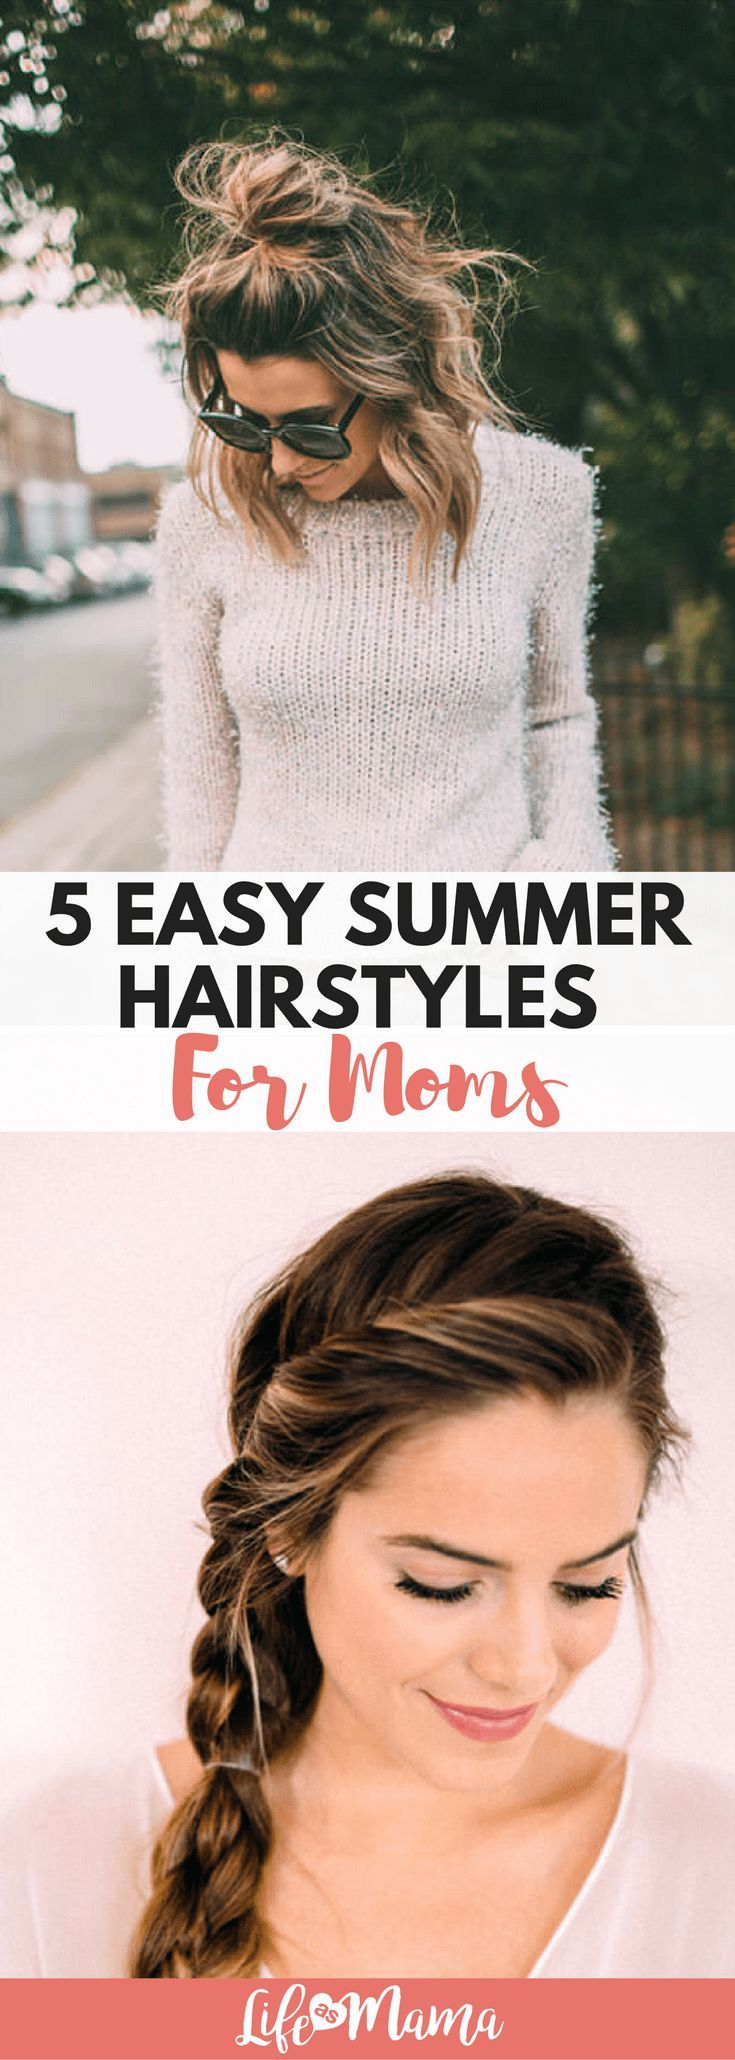 5 Easy Summer Hairstyles For Moms – #Easy #Hairsty…